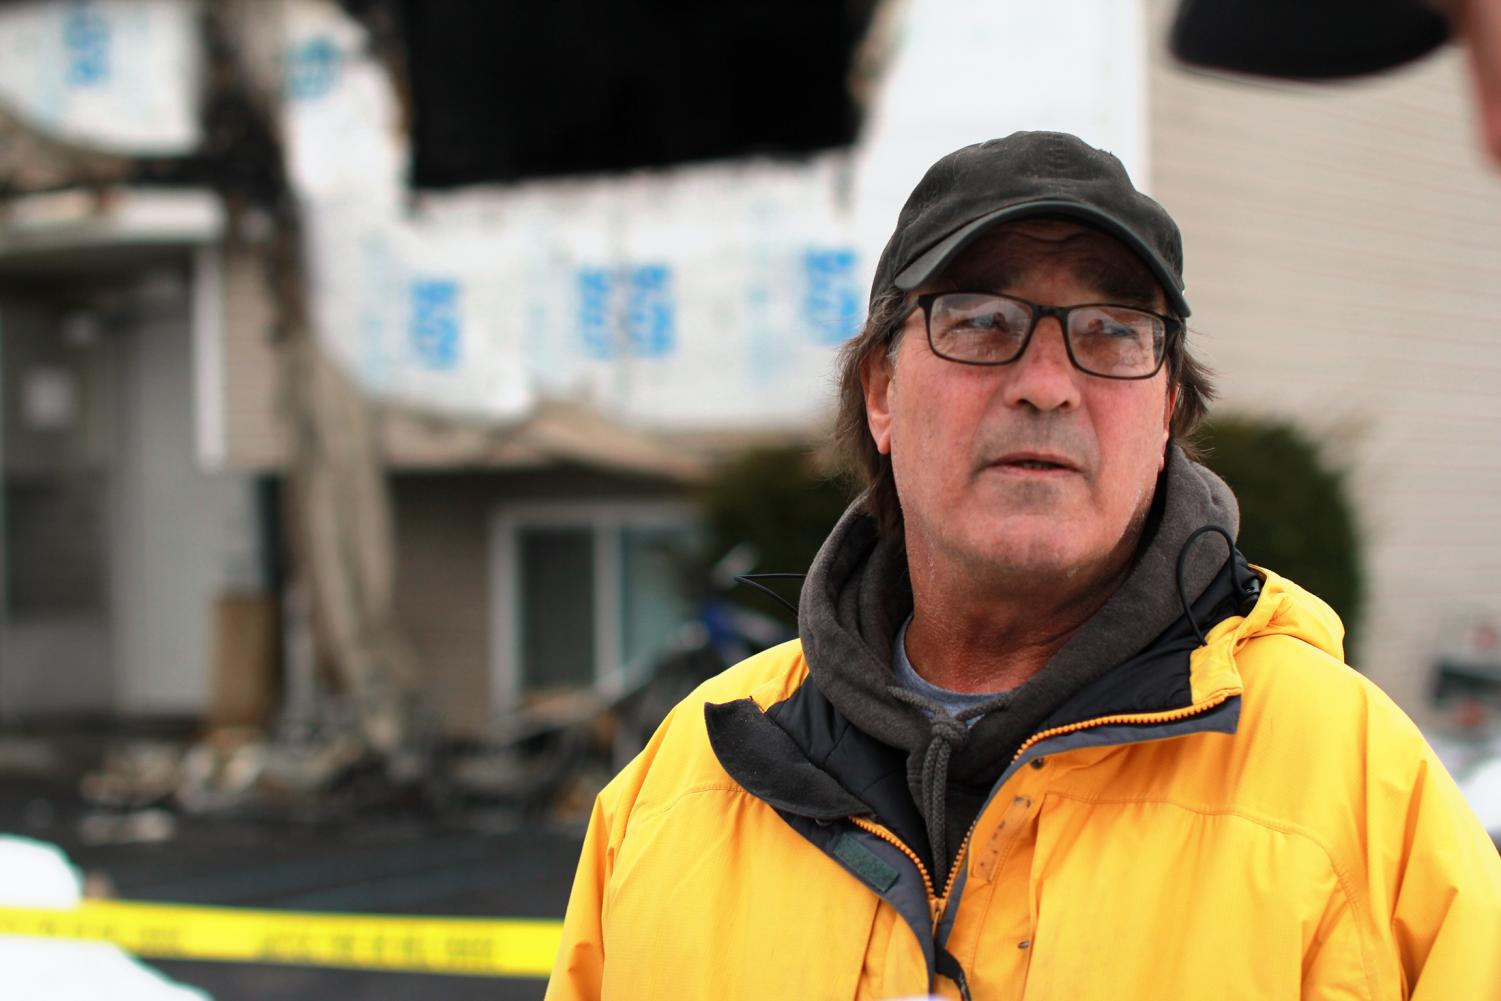 Sojourner's Alliance director Steve Bonnar says residents displaced by the fire that broke out early Monday morning are currently staying in a hotel.  The residents left with only what they could carry, and have not been able to return to collect more of their belongings.